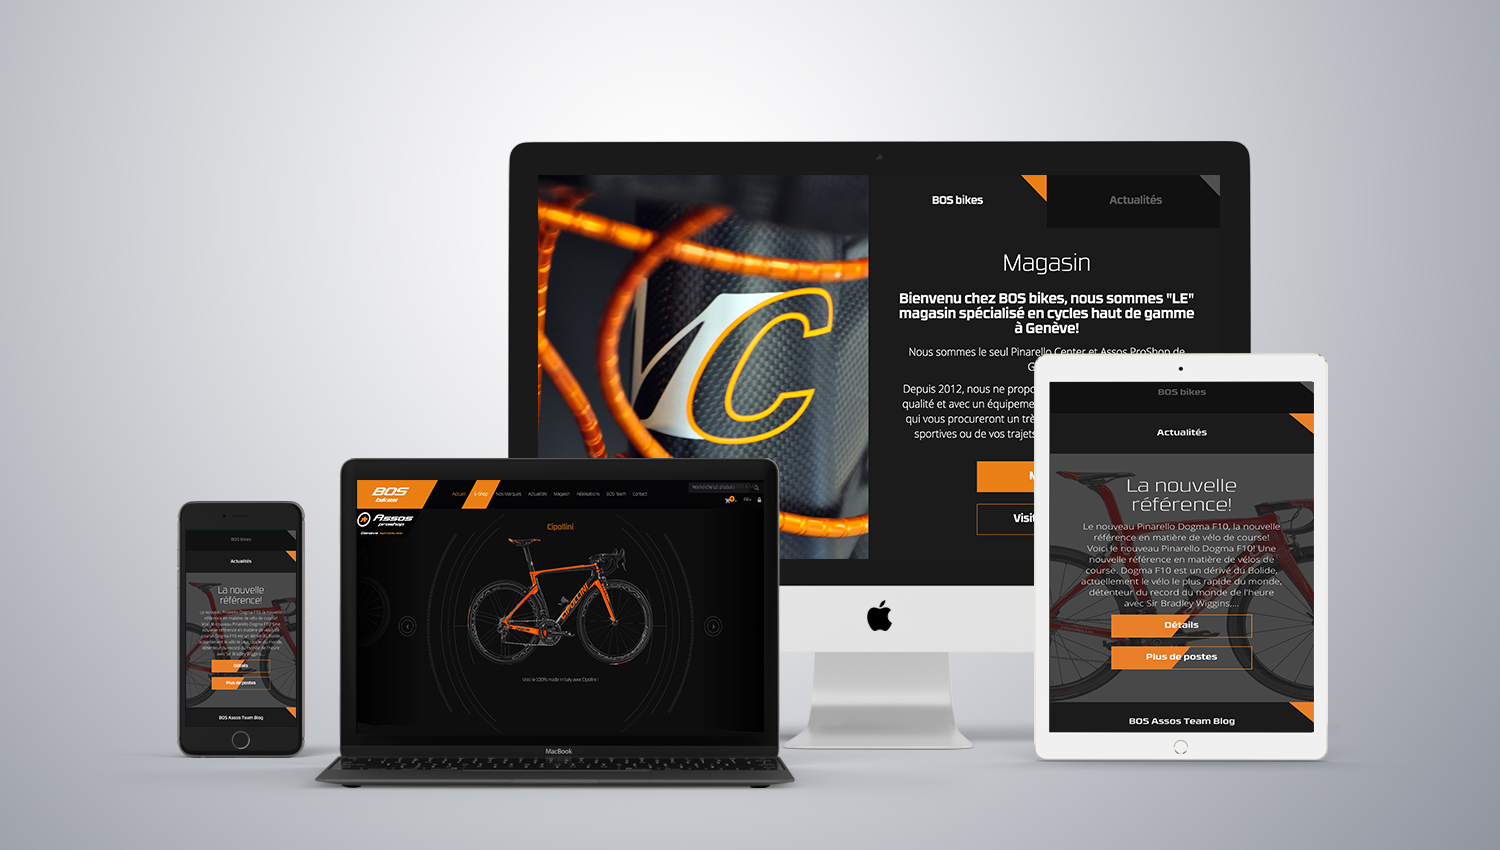 Web design desktop view for Bosbikes 1by 8 Ways